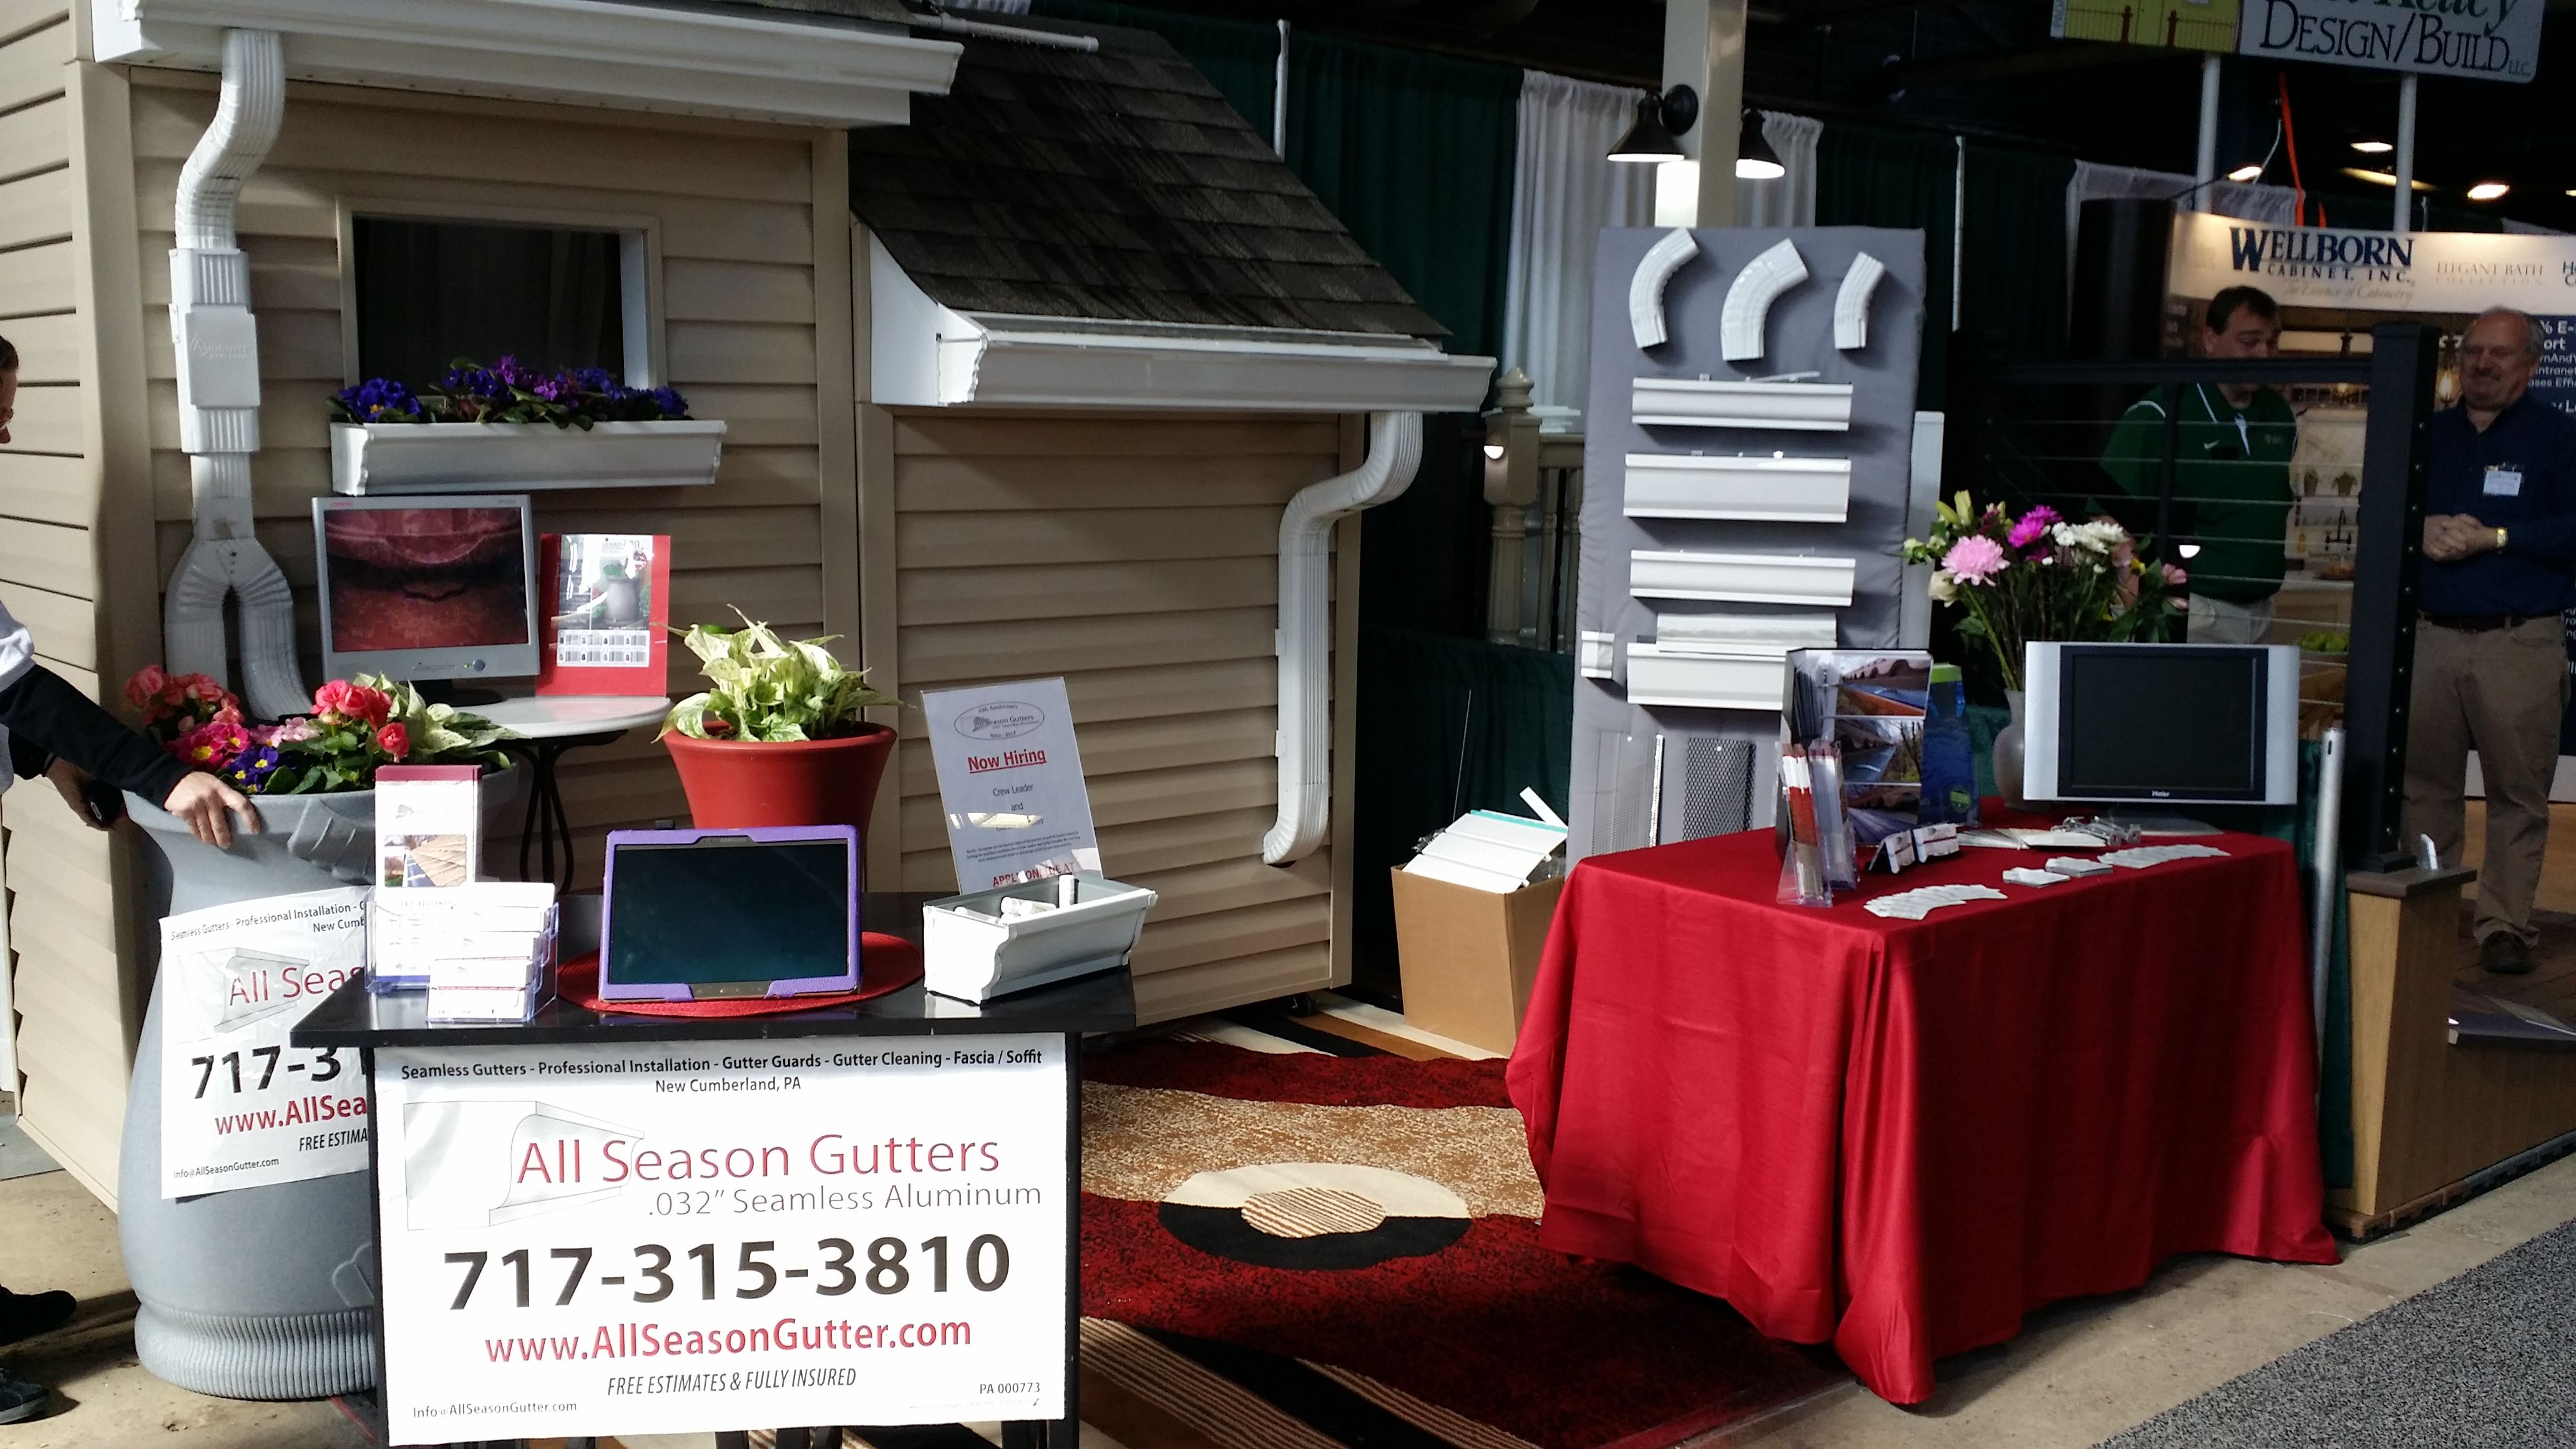 Just a corner view of the booth before showtime rain